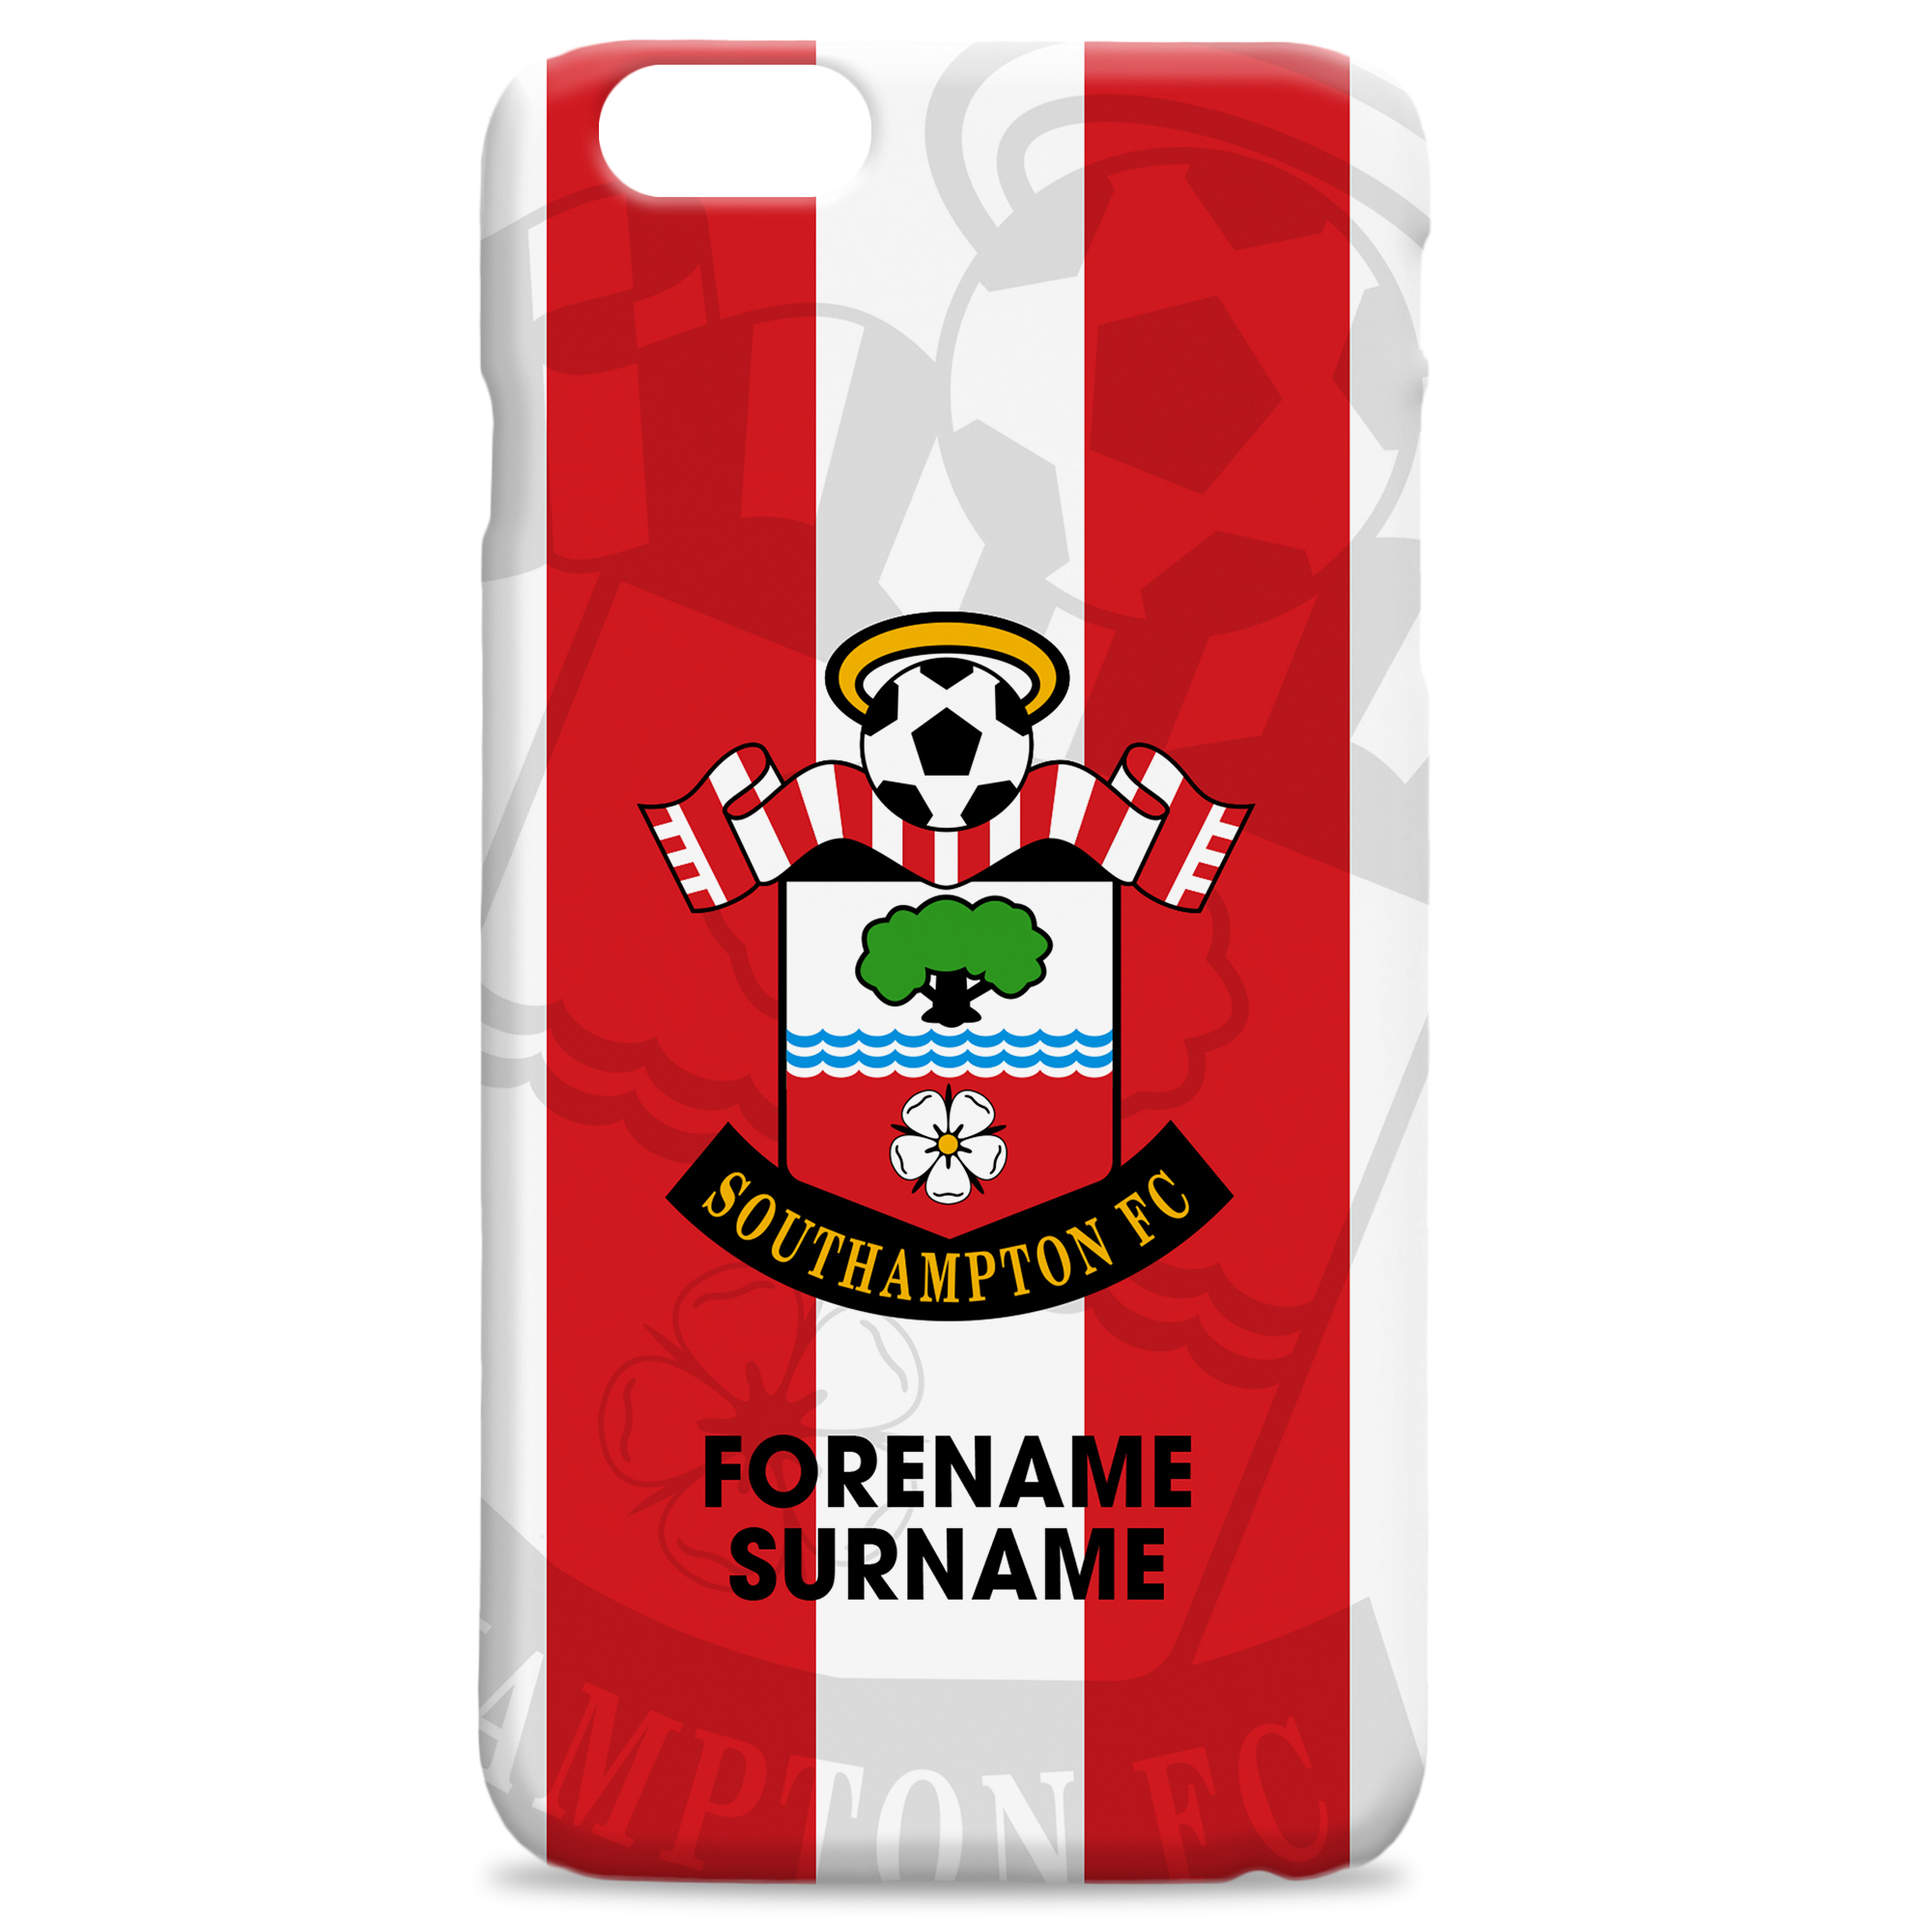 Southampton FC Bold Crest Hard Back Phone Case